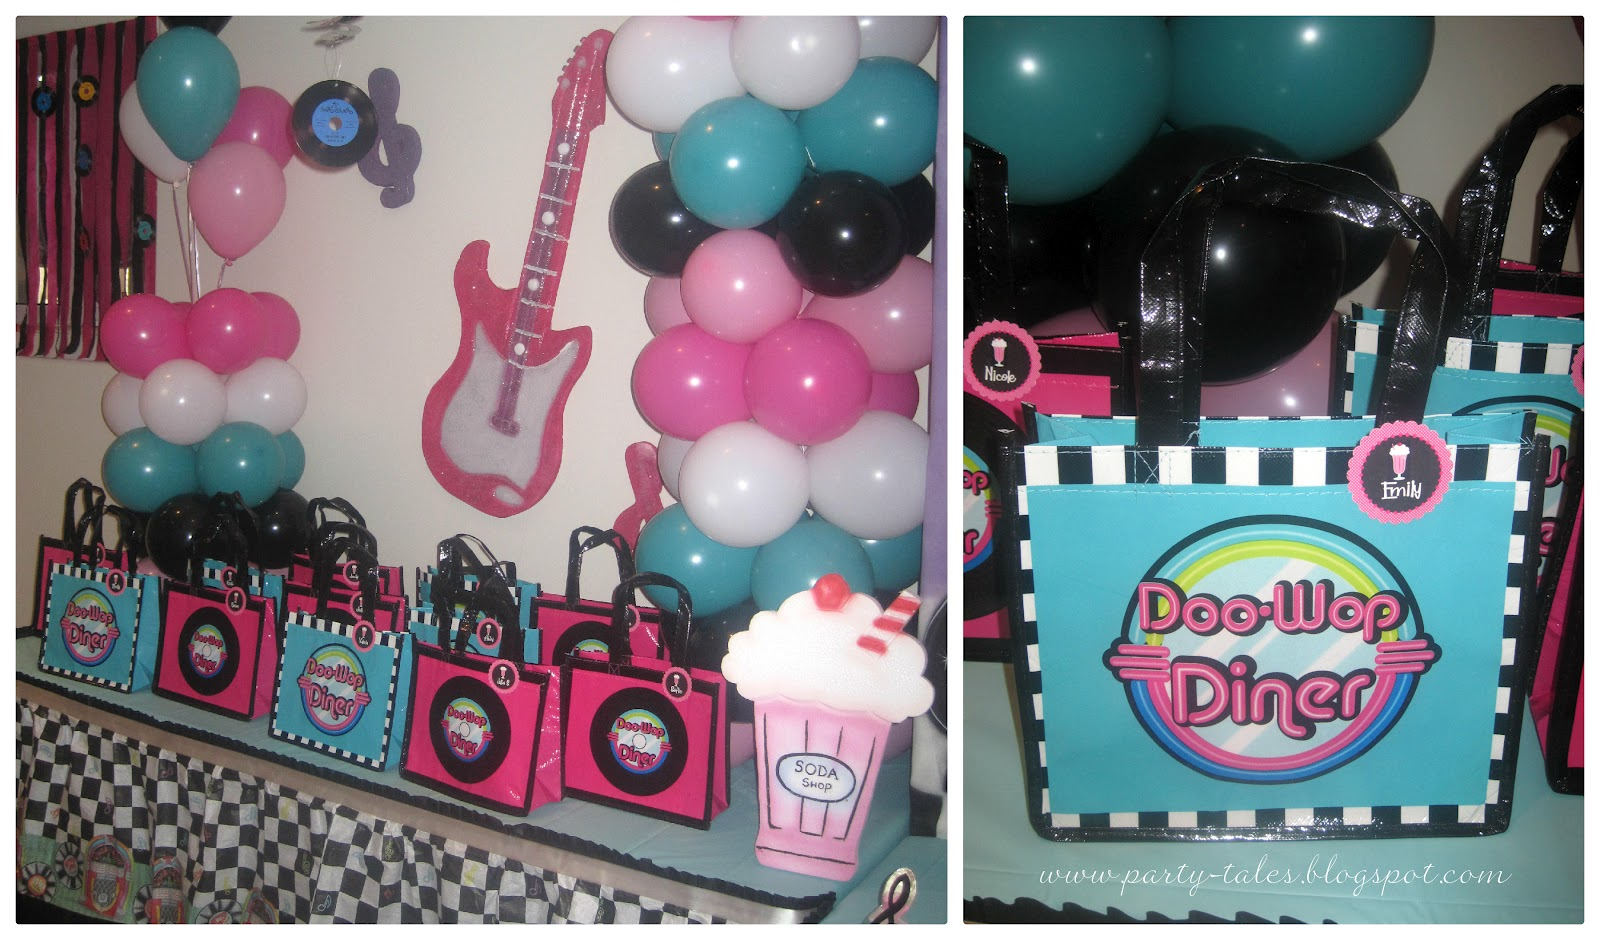 Party tales birthday party 50 39 s diner sock hop part 2 for 50 s theme decoration ideas